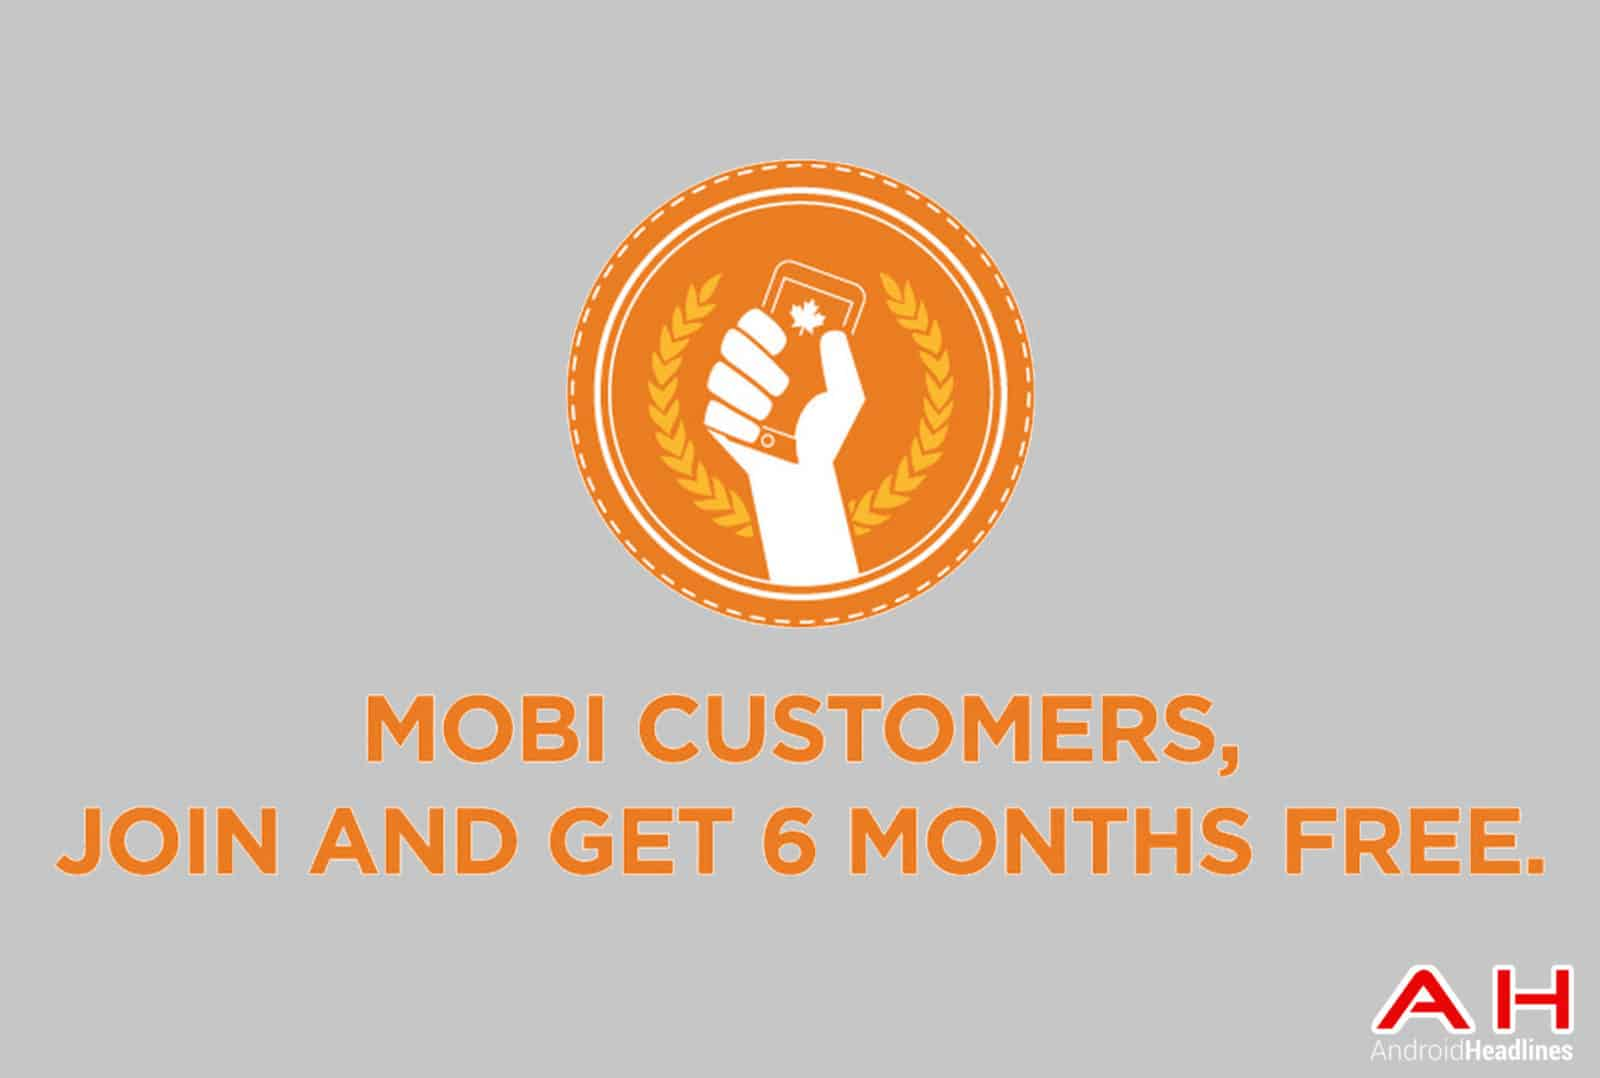 WIND Mobile 6 months FREE cam AH